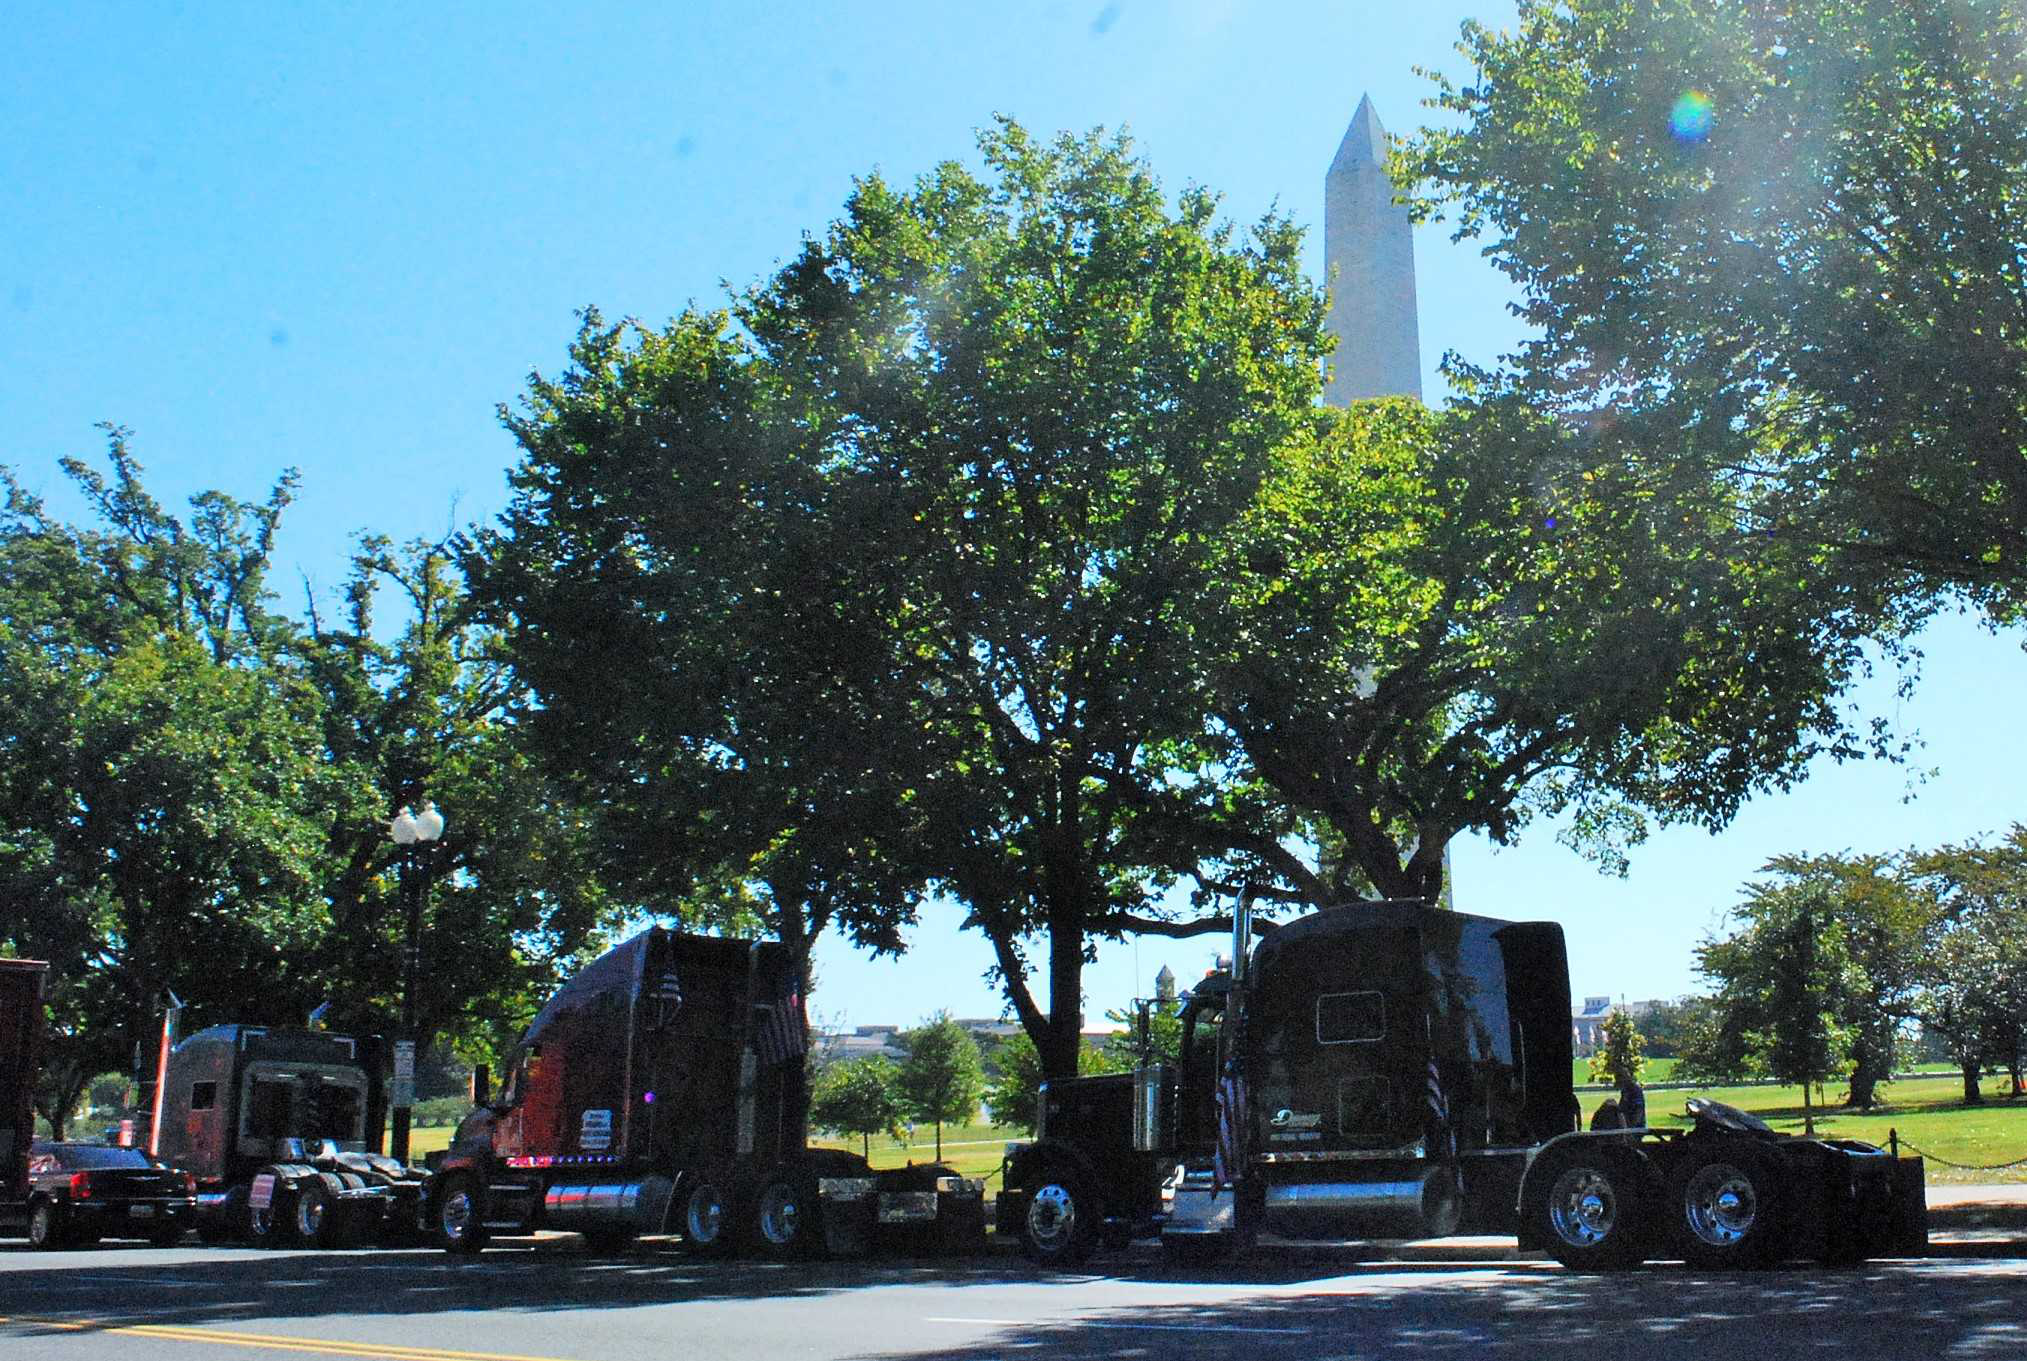 In The Wee Hours Of Morning Wednesday 30 Or More Trucks Rolled Into Washington DC Bobtail And Assumed Parking Positions Along Constitution Ave